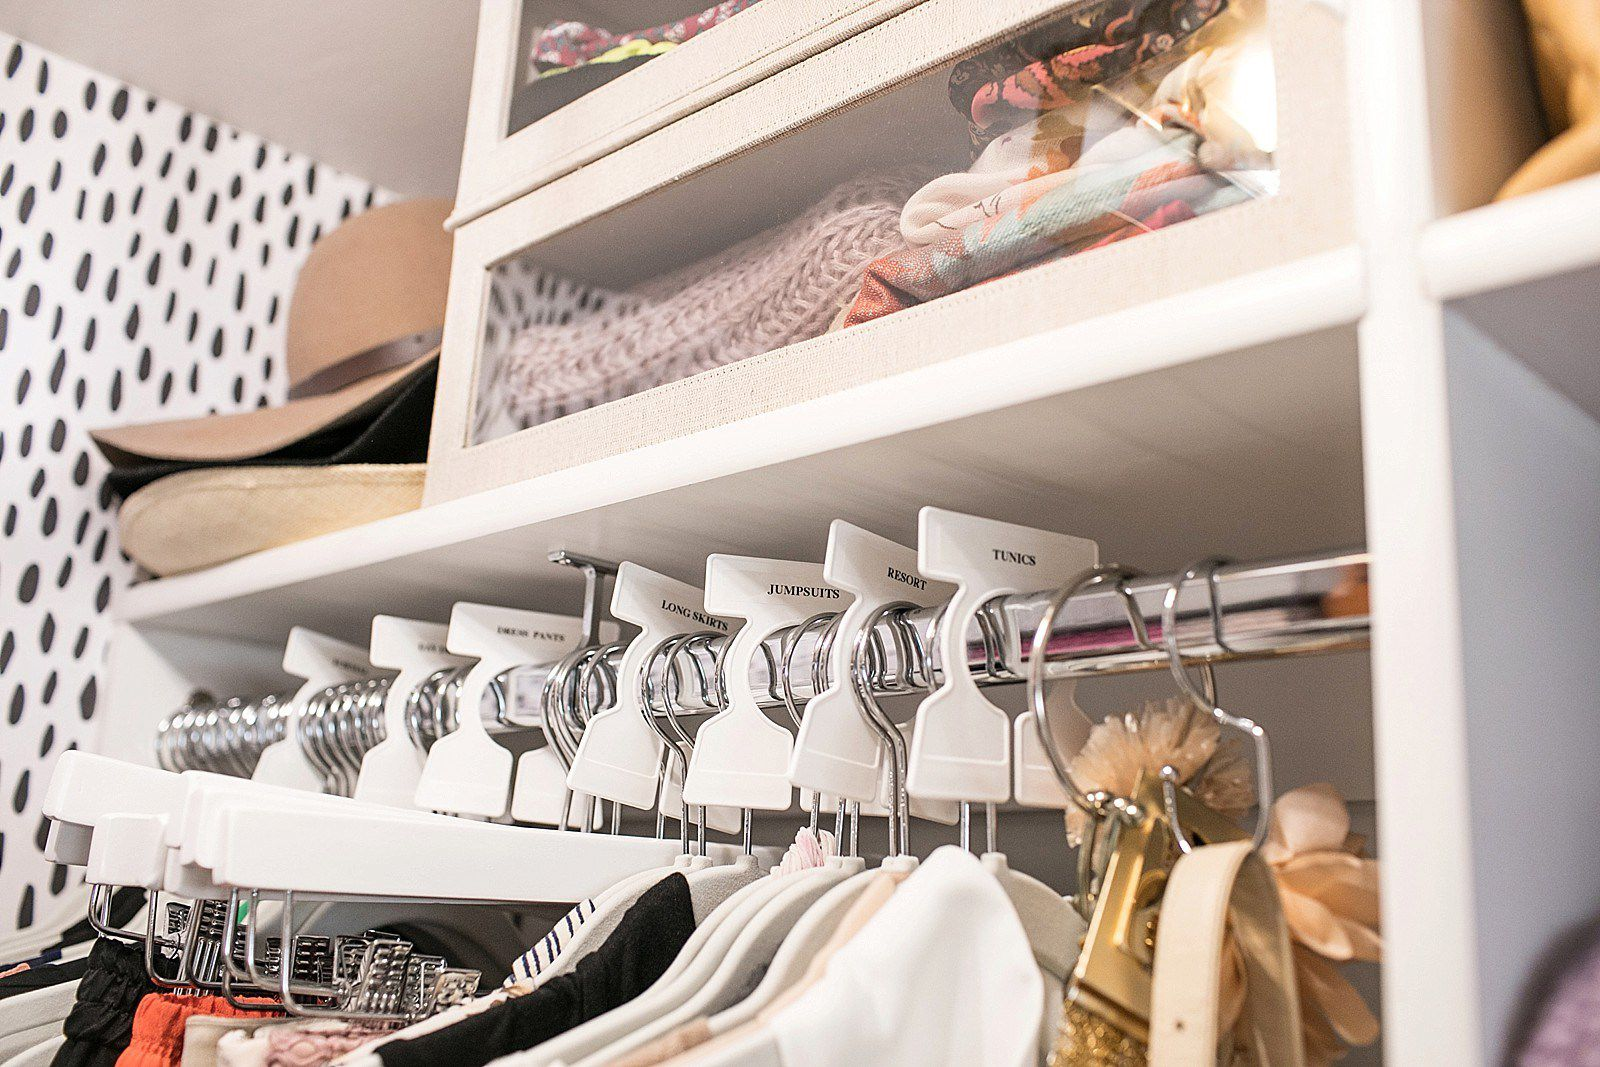 21 Best Small Walk-in Closet Storage Ideas for Bedrooms